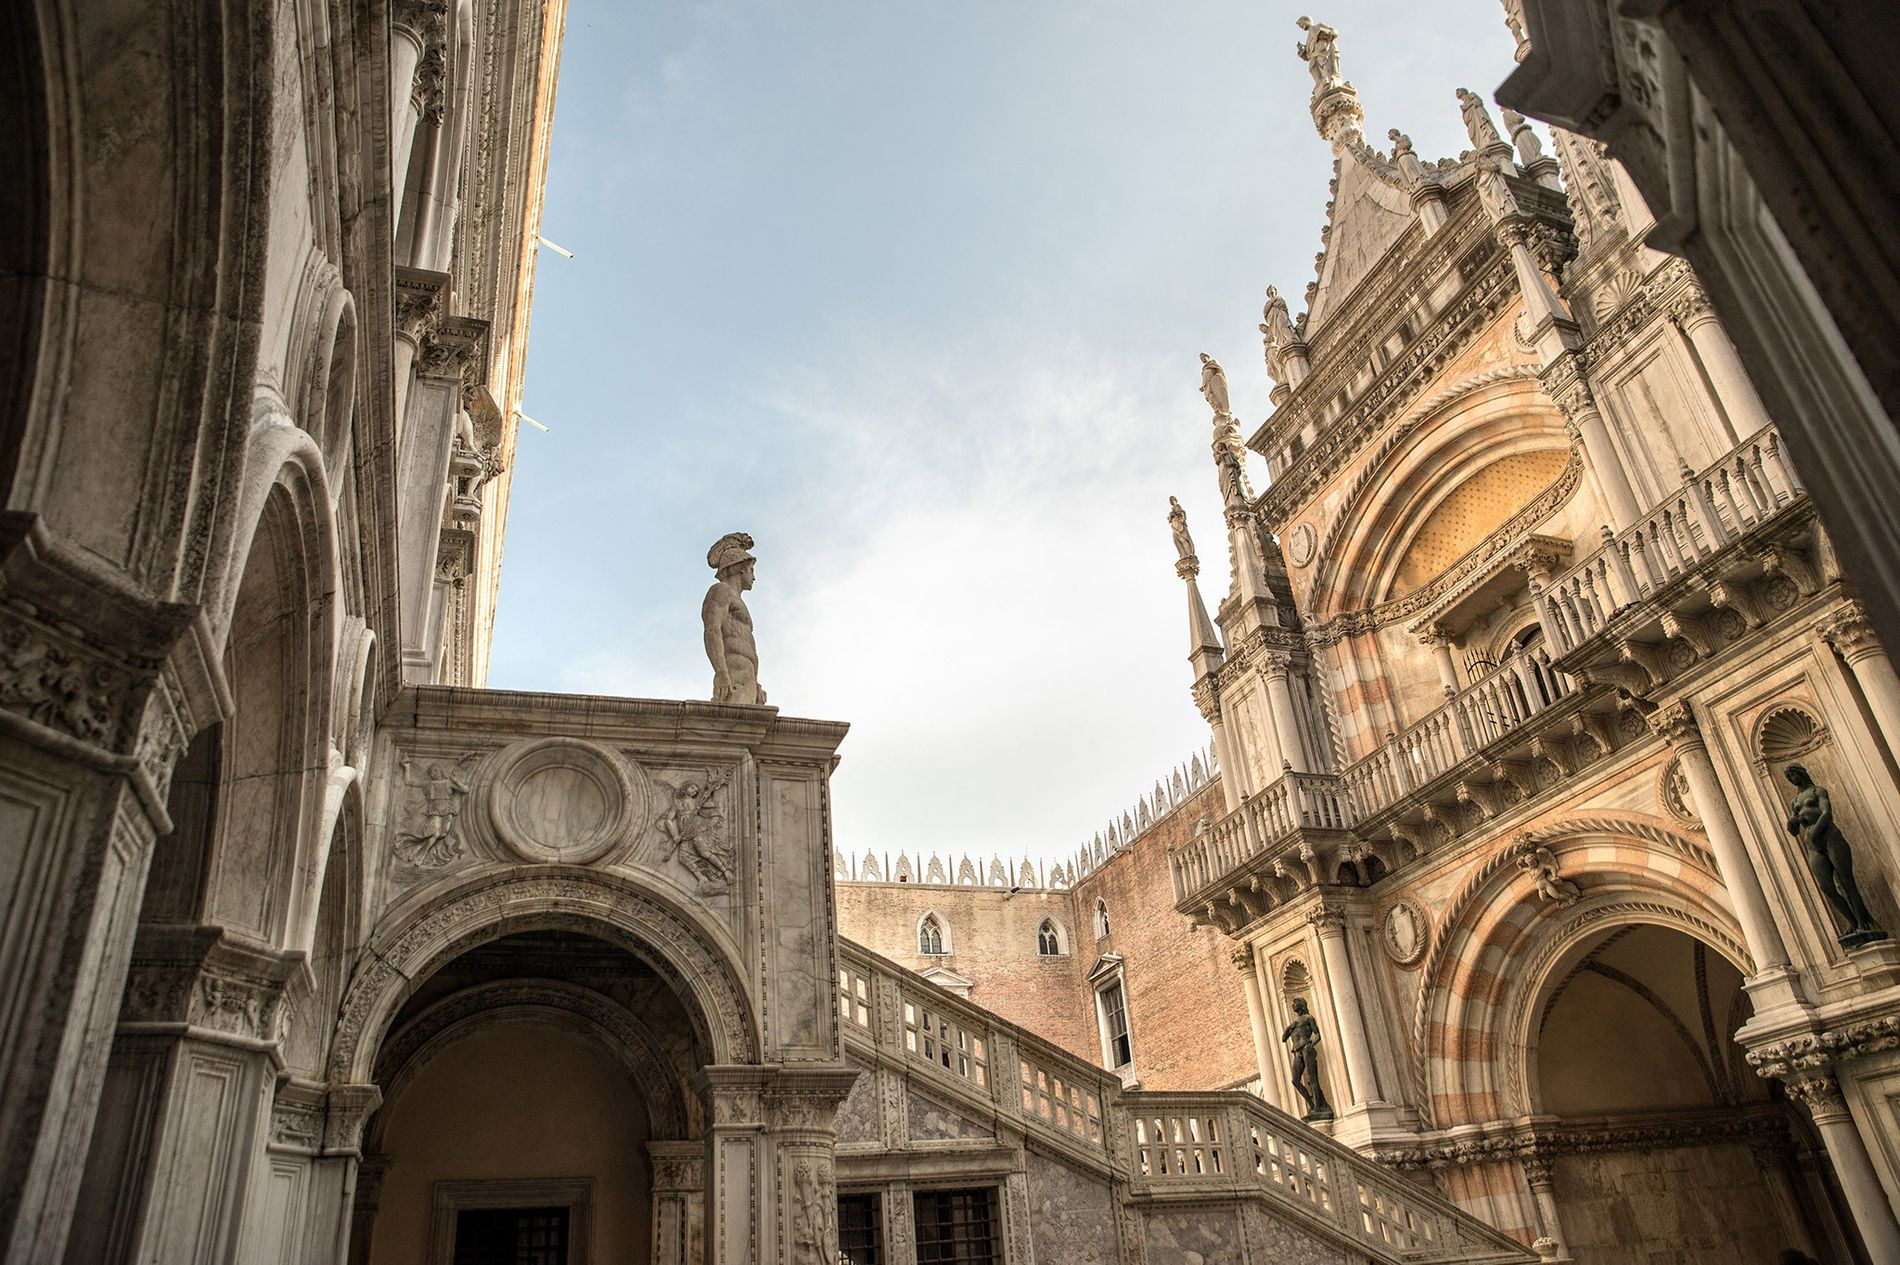 Once the seat of Venetian government, the Doge's Palace stands as the symbol of Venice and a masterpiece of Gothic architecture.